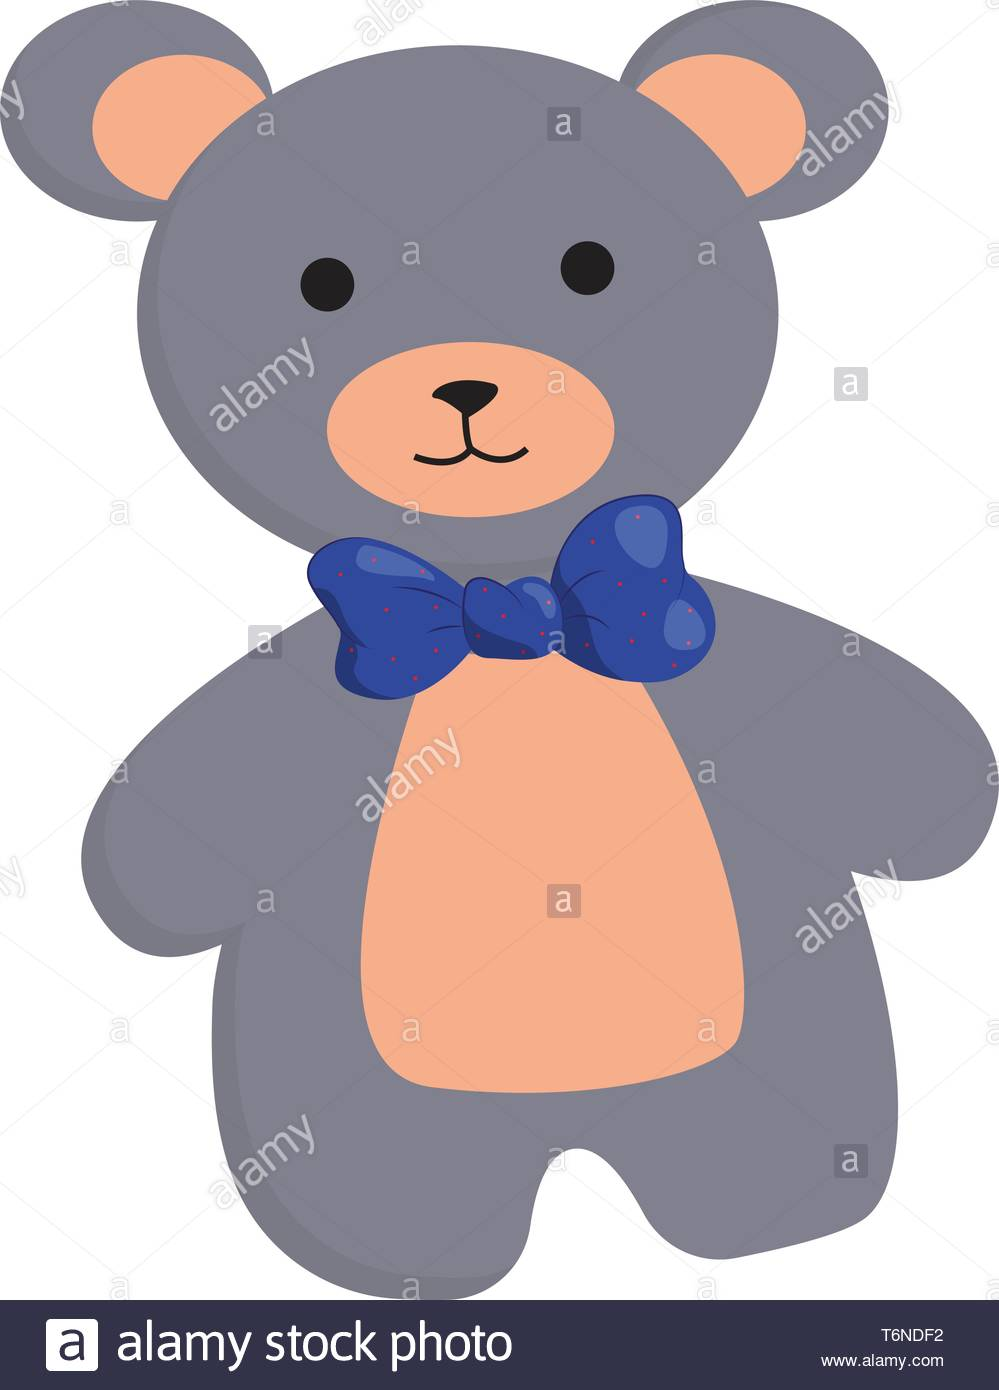 Clipart of a cute teddy bear in grey and peach colors wears a blue.